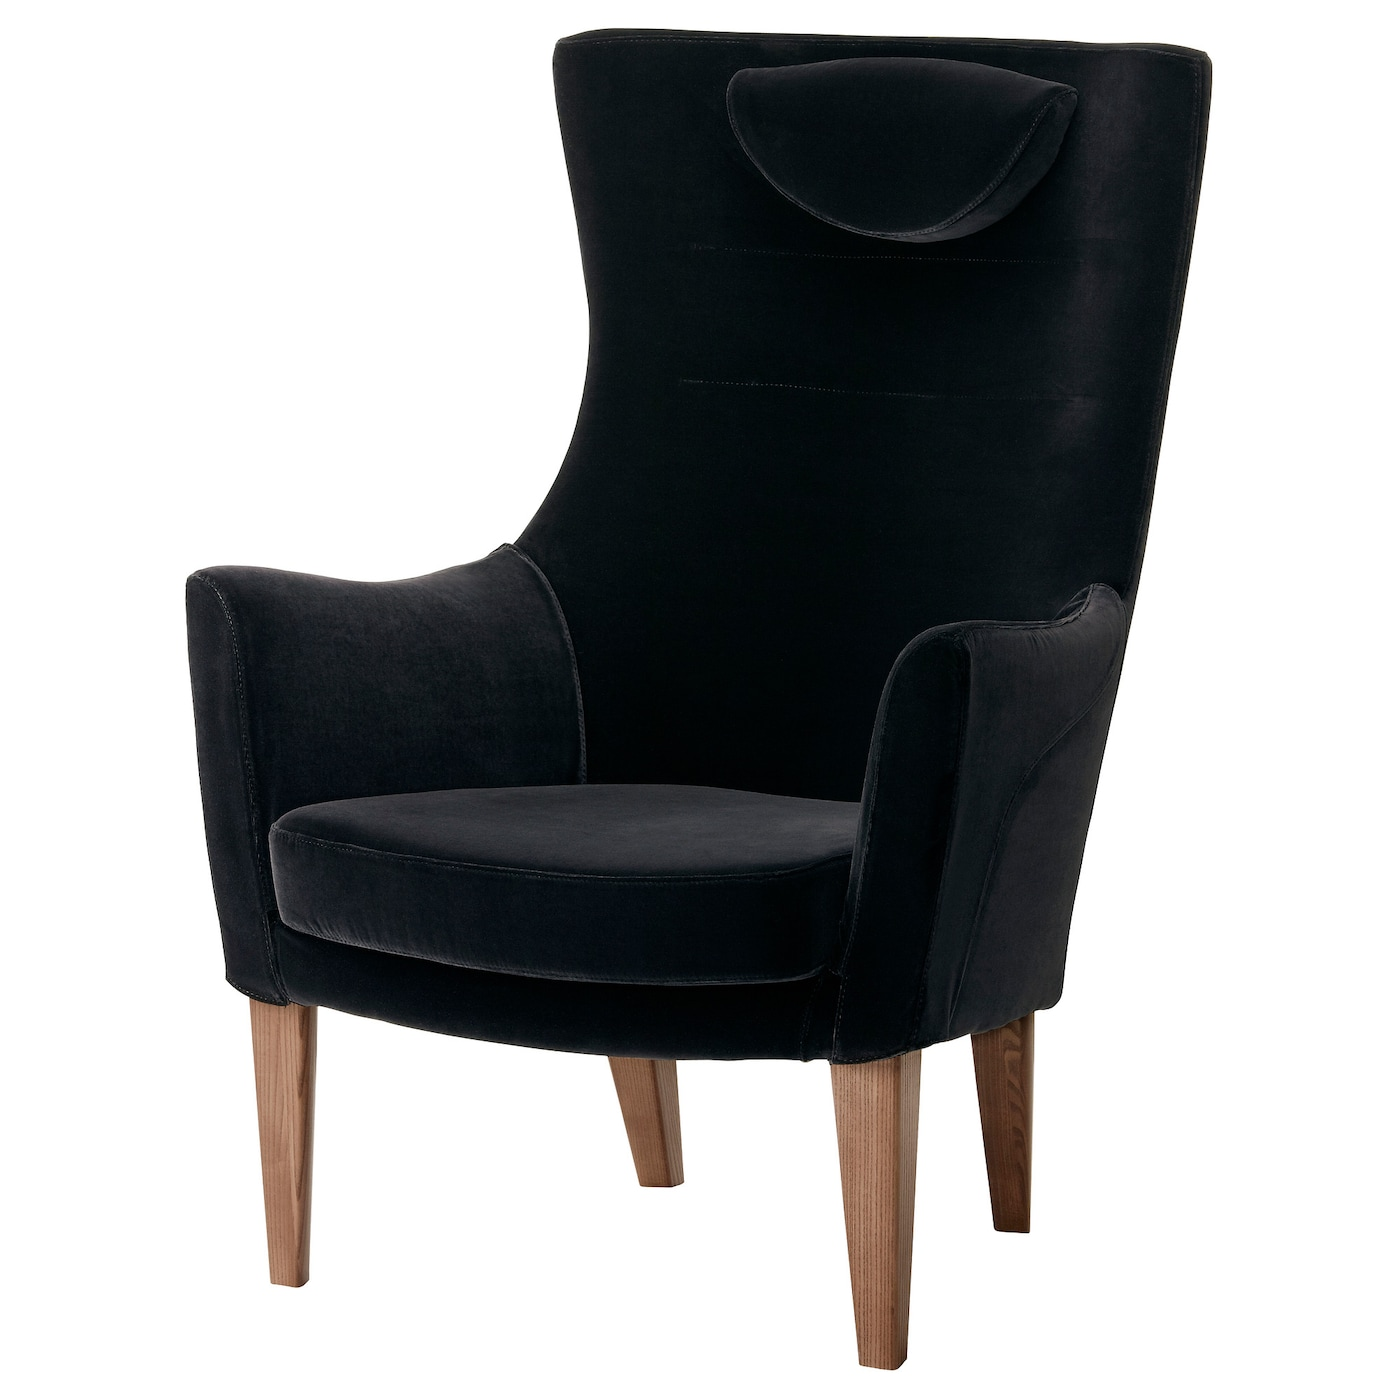 Stockholm high back armchair sandbacka black ikea for Armchair with high back